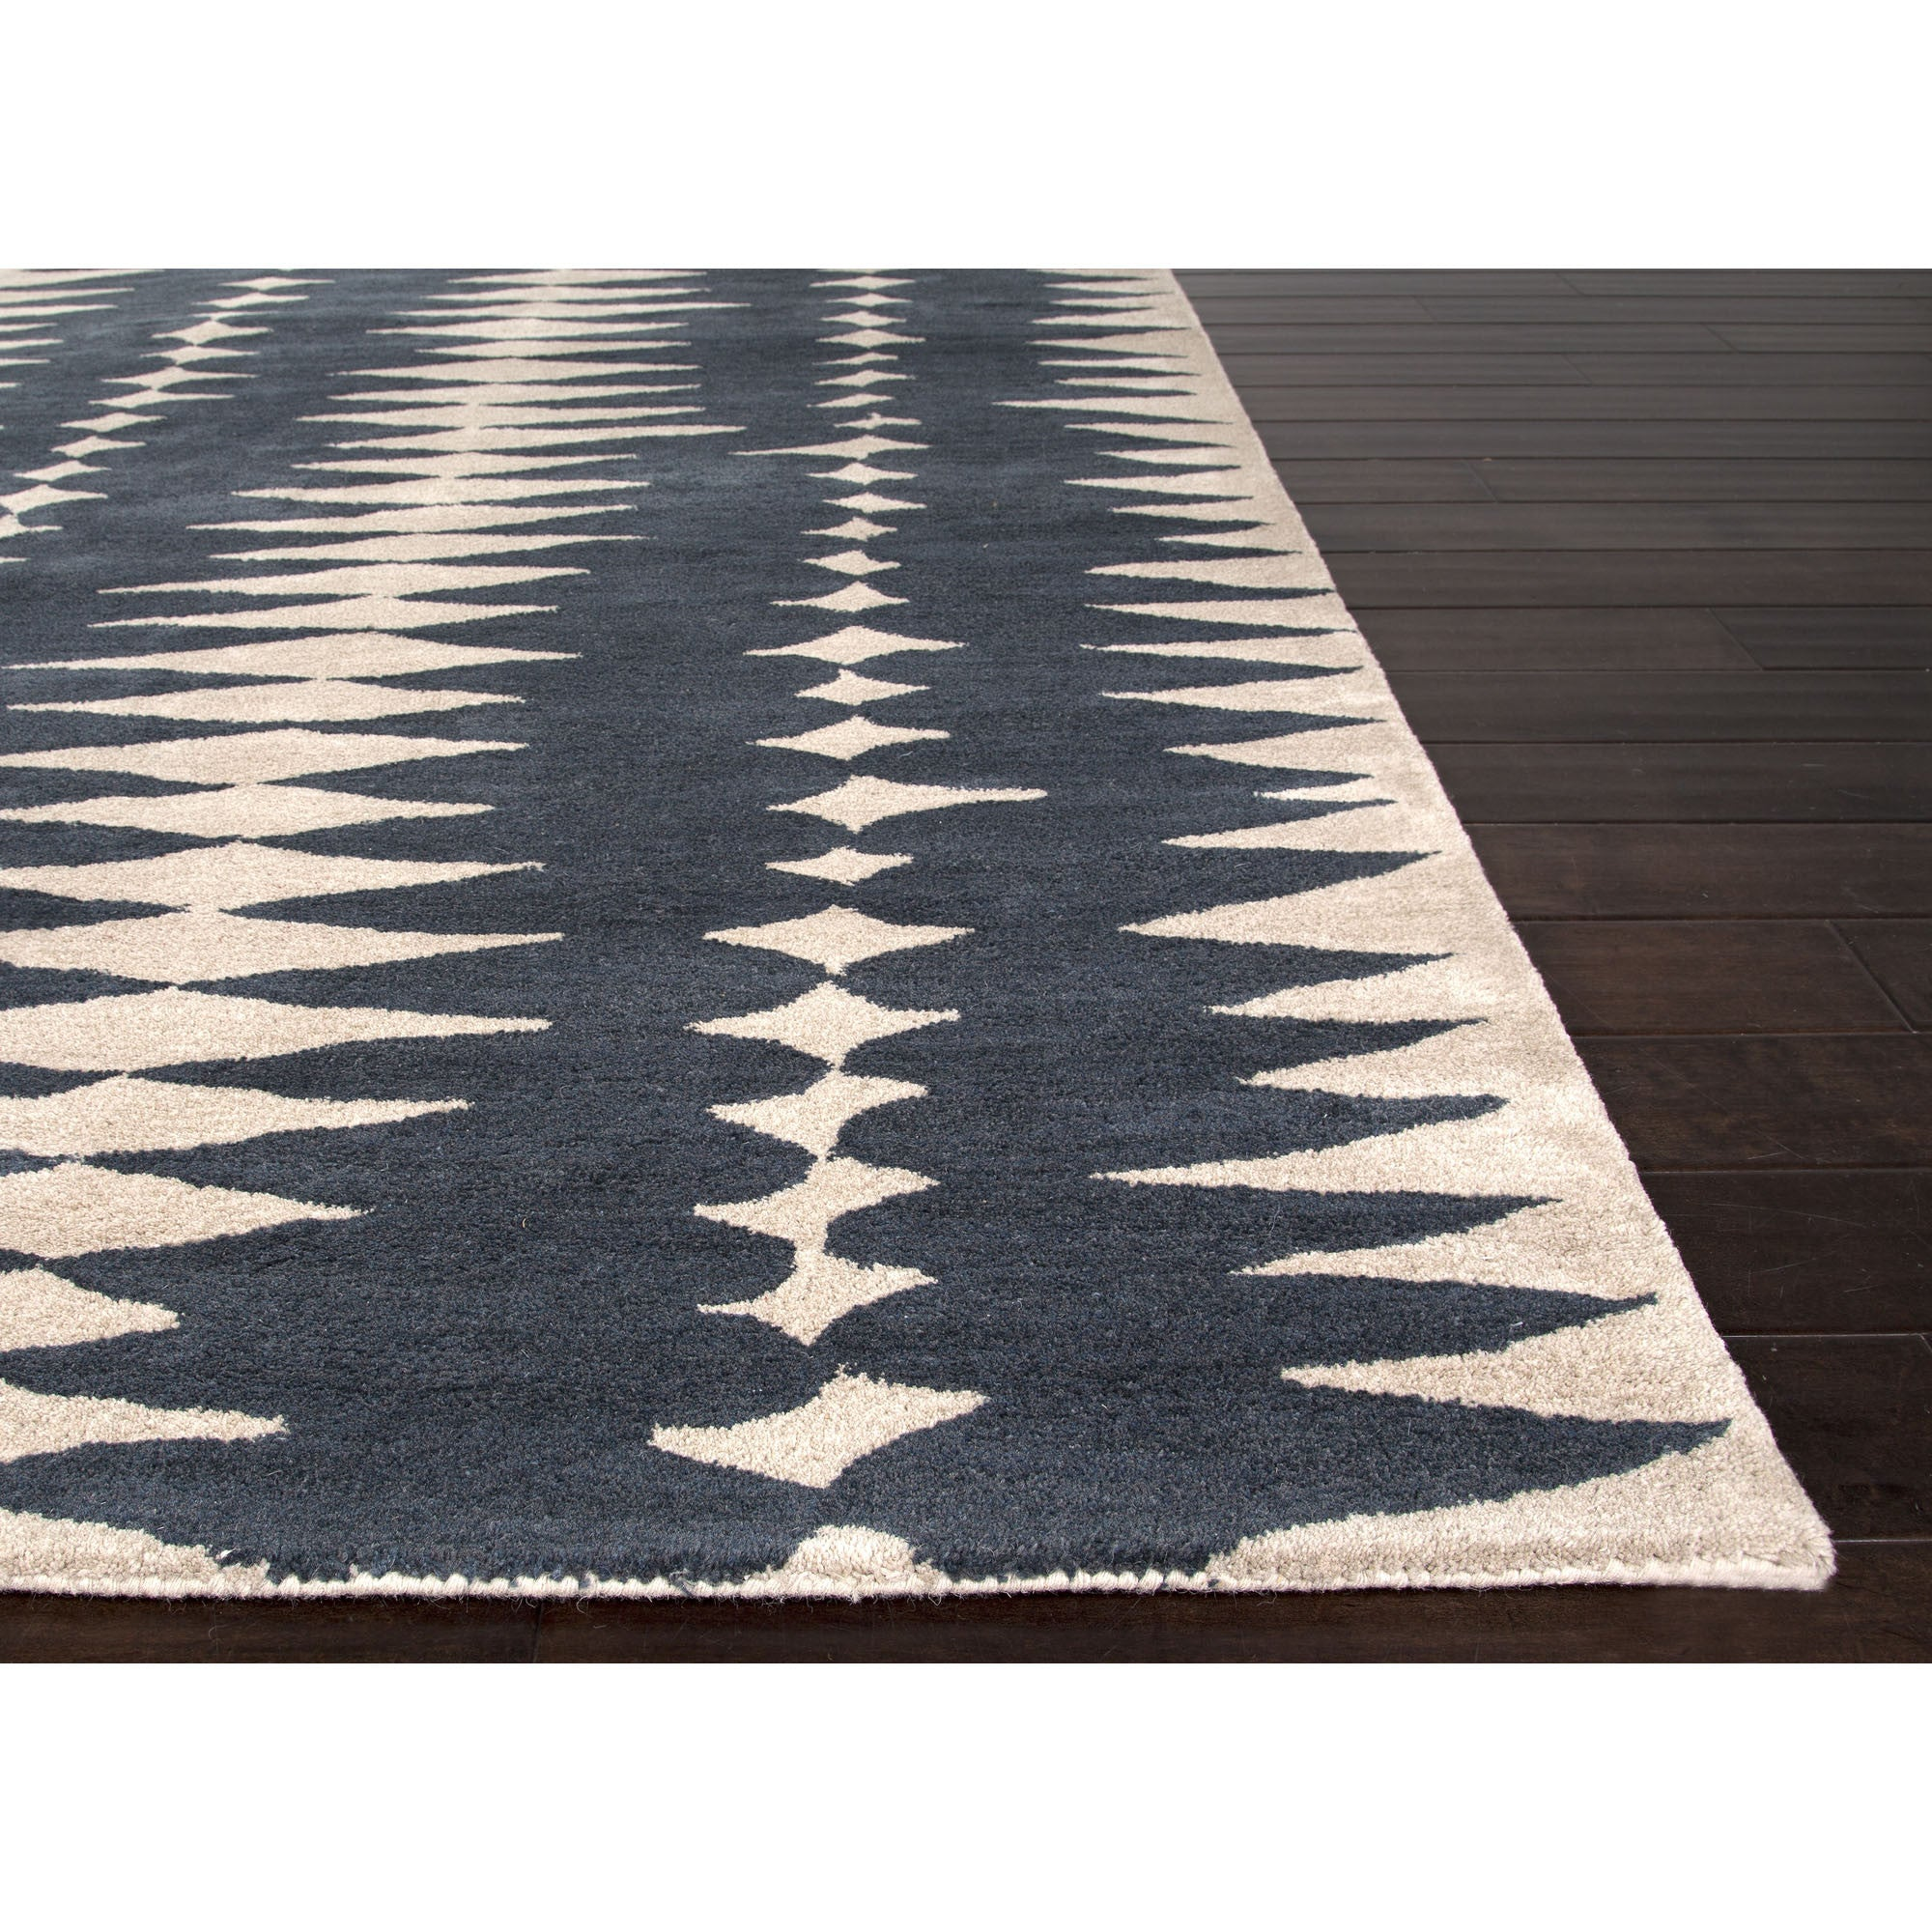 Jaipur rugs modern geometric pattern blue ivory wool area for Modern wool area rugs